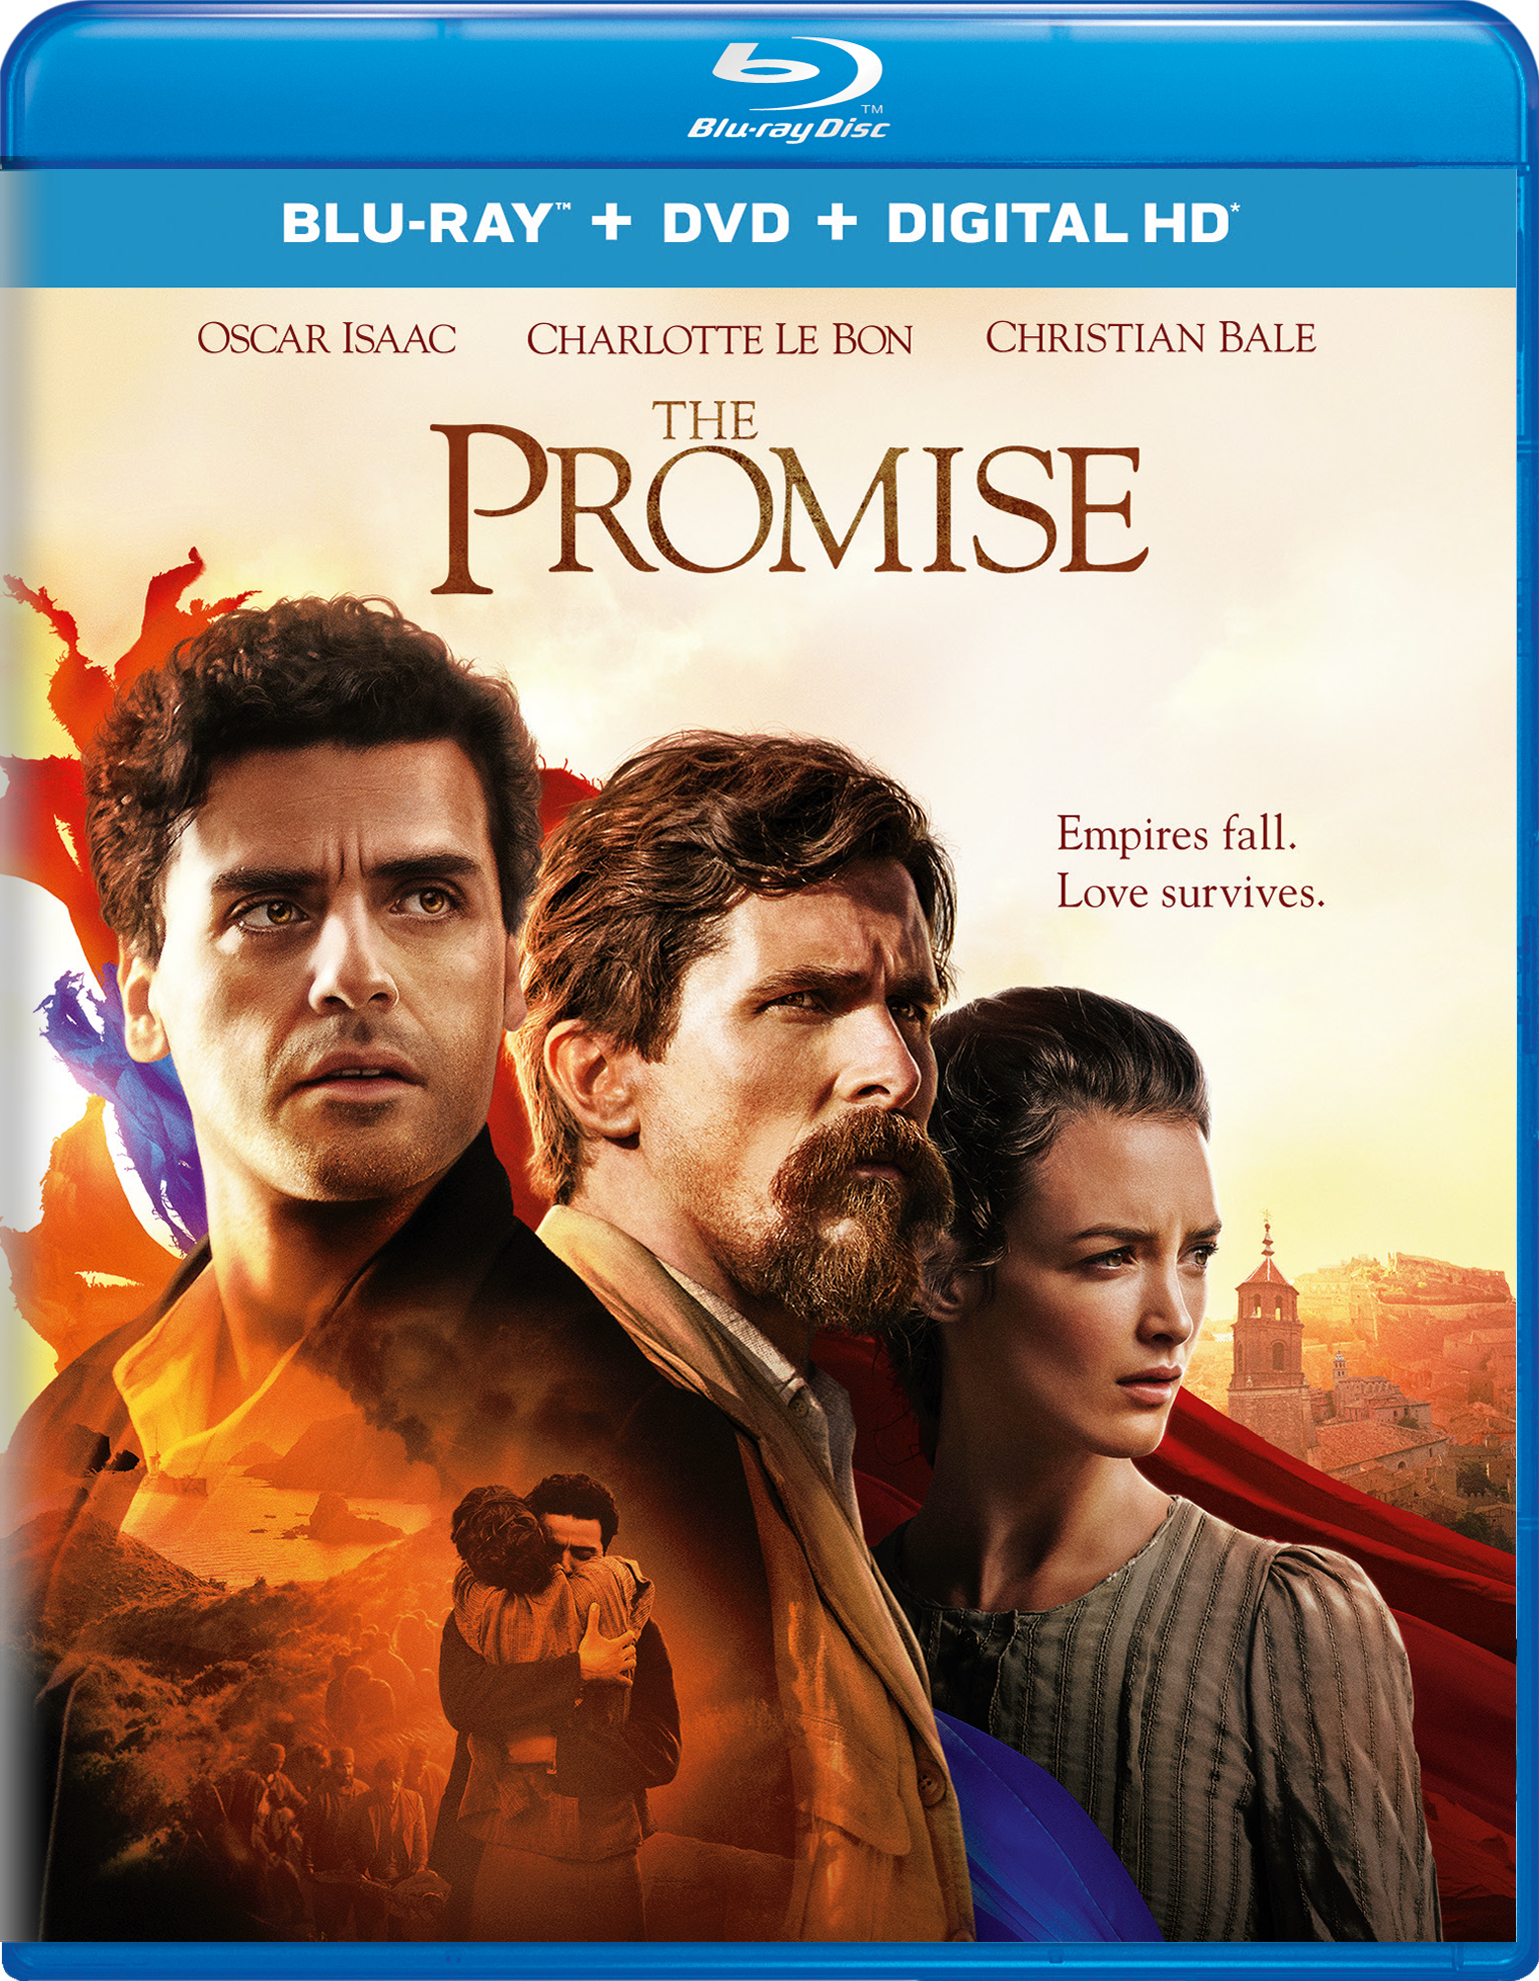 The Promise (2016) poster image